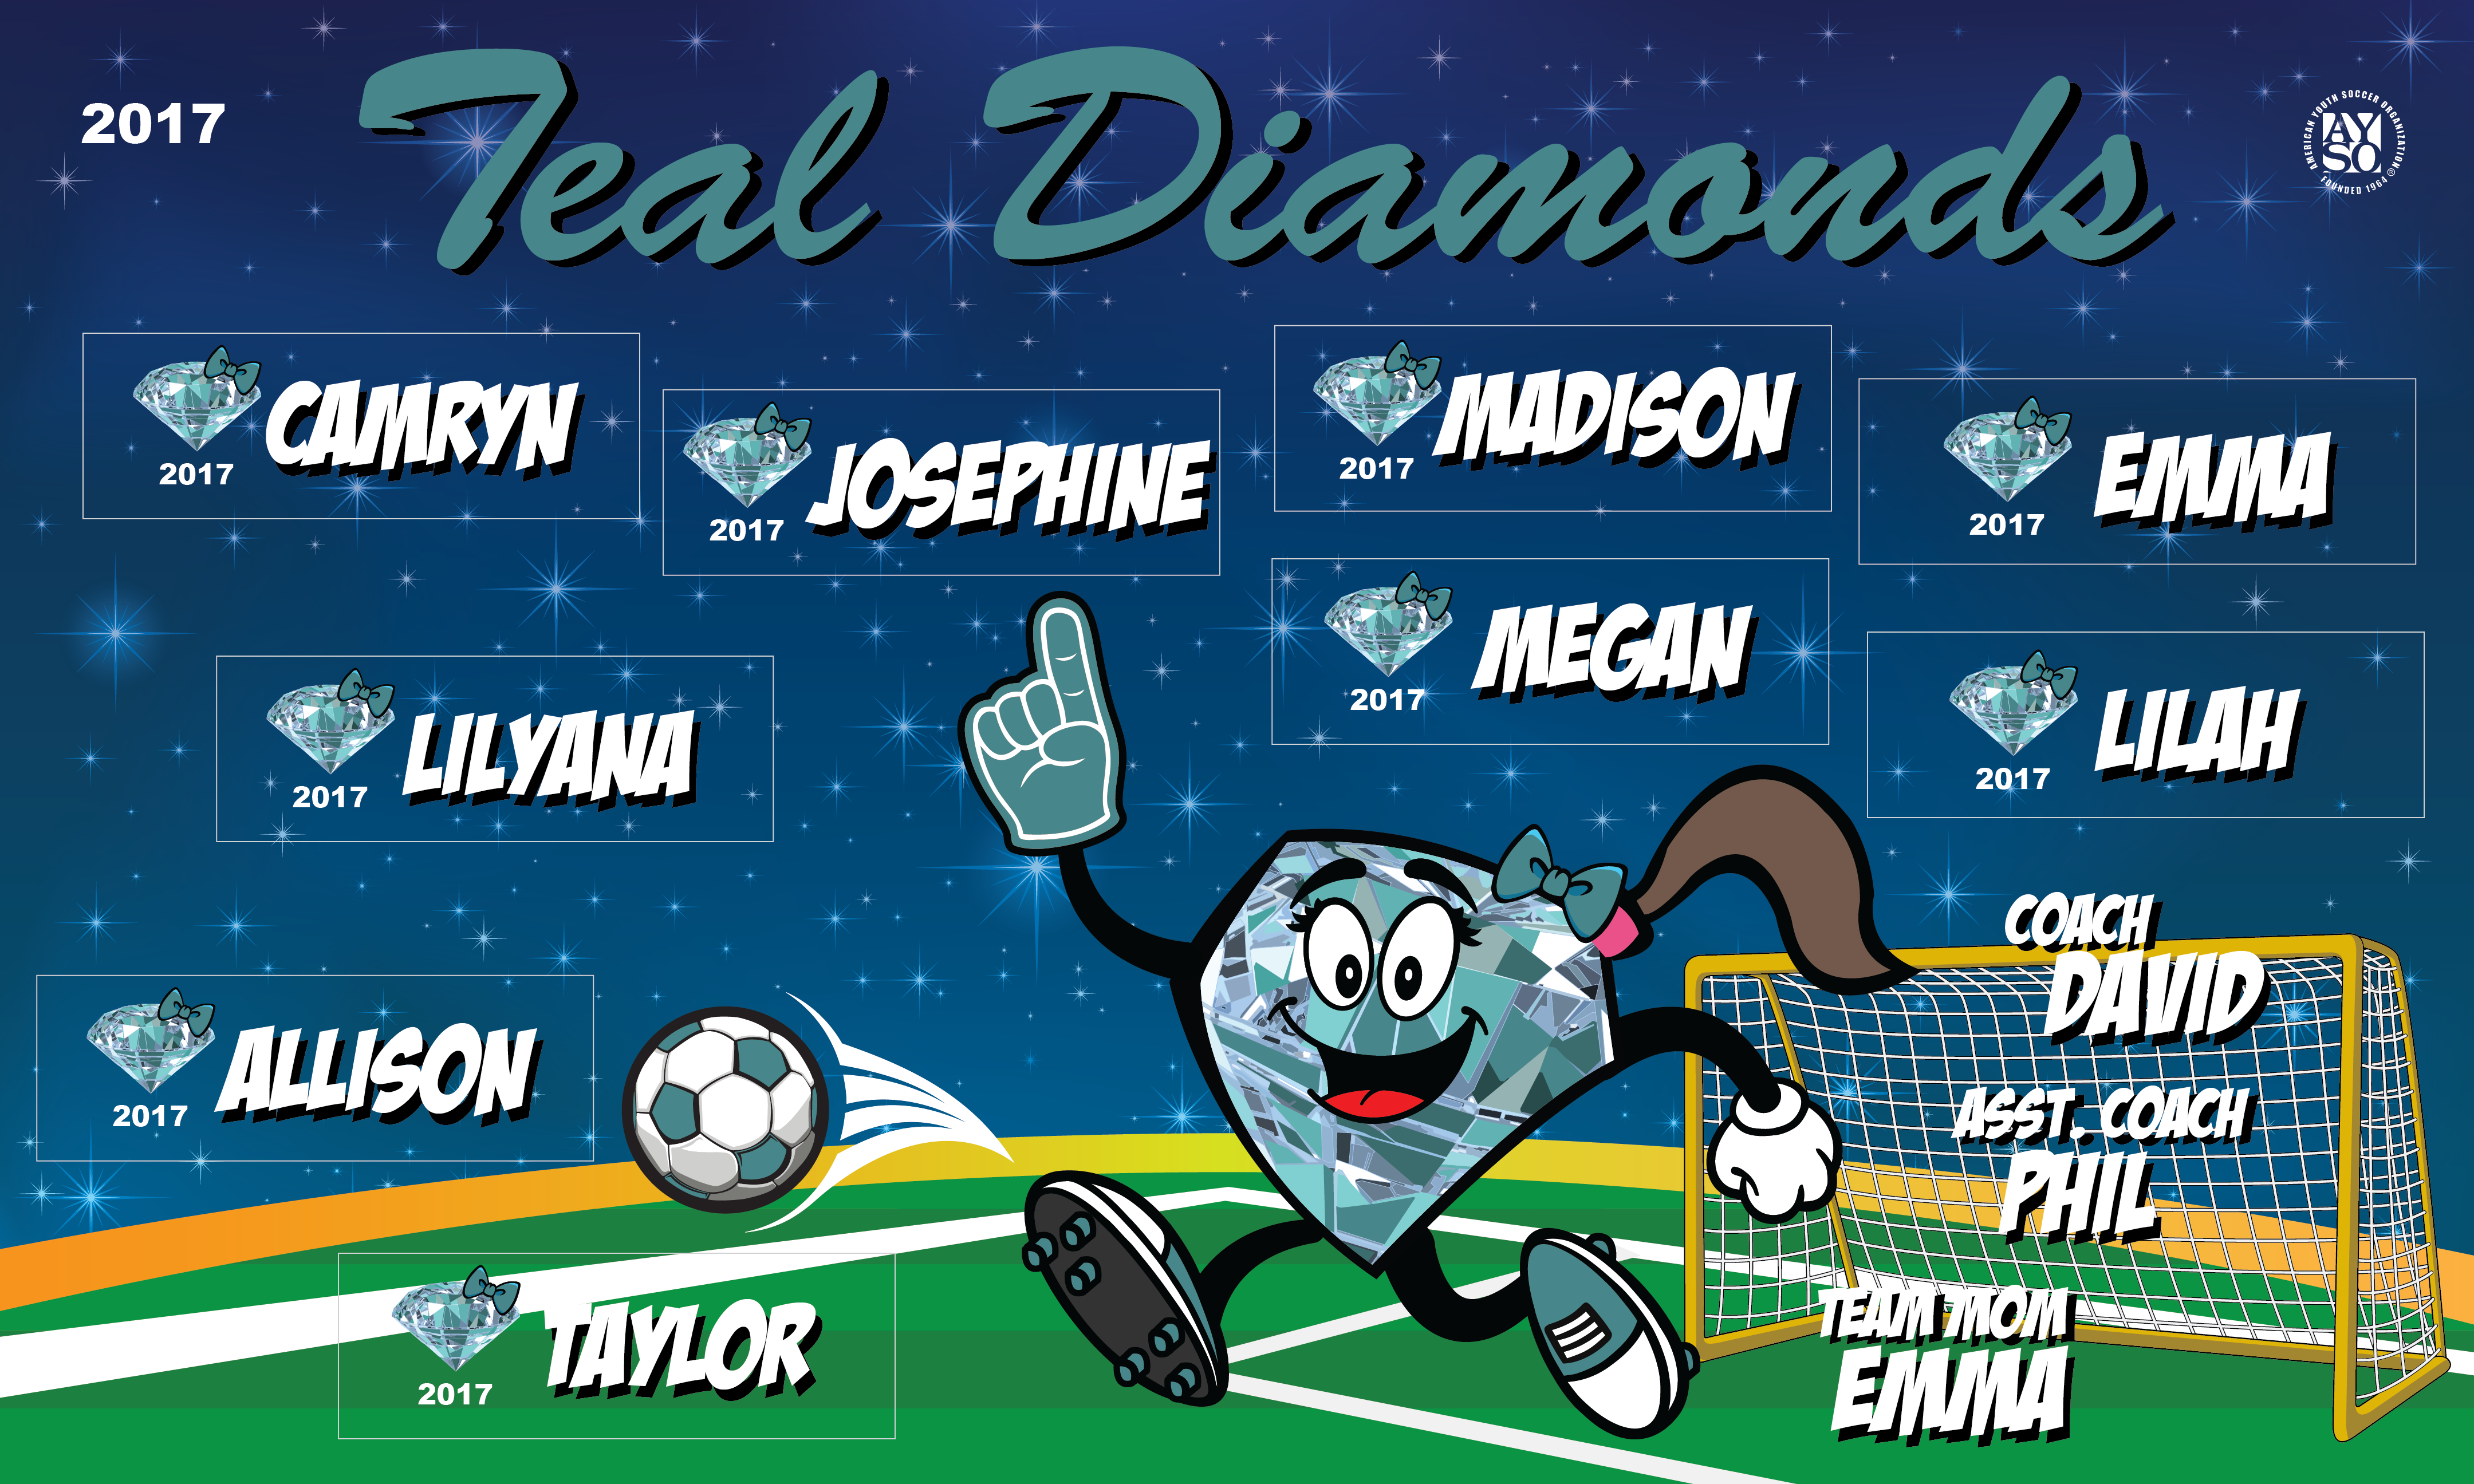 B2047 Teal Diamonds 3x5 Banner